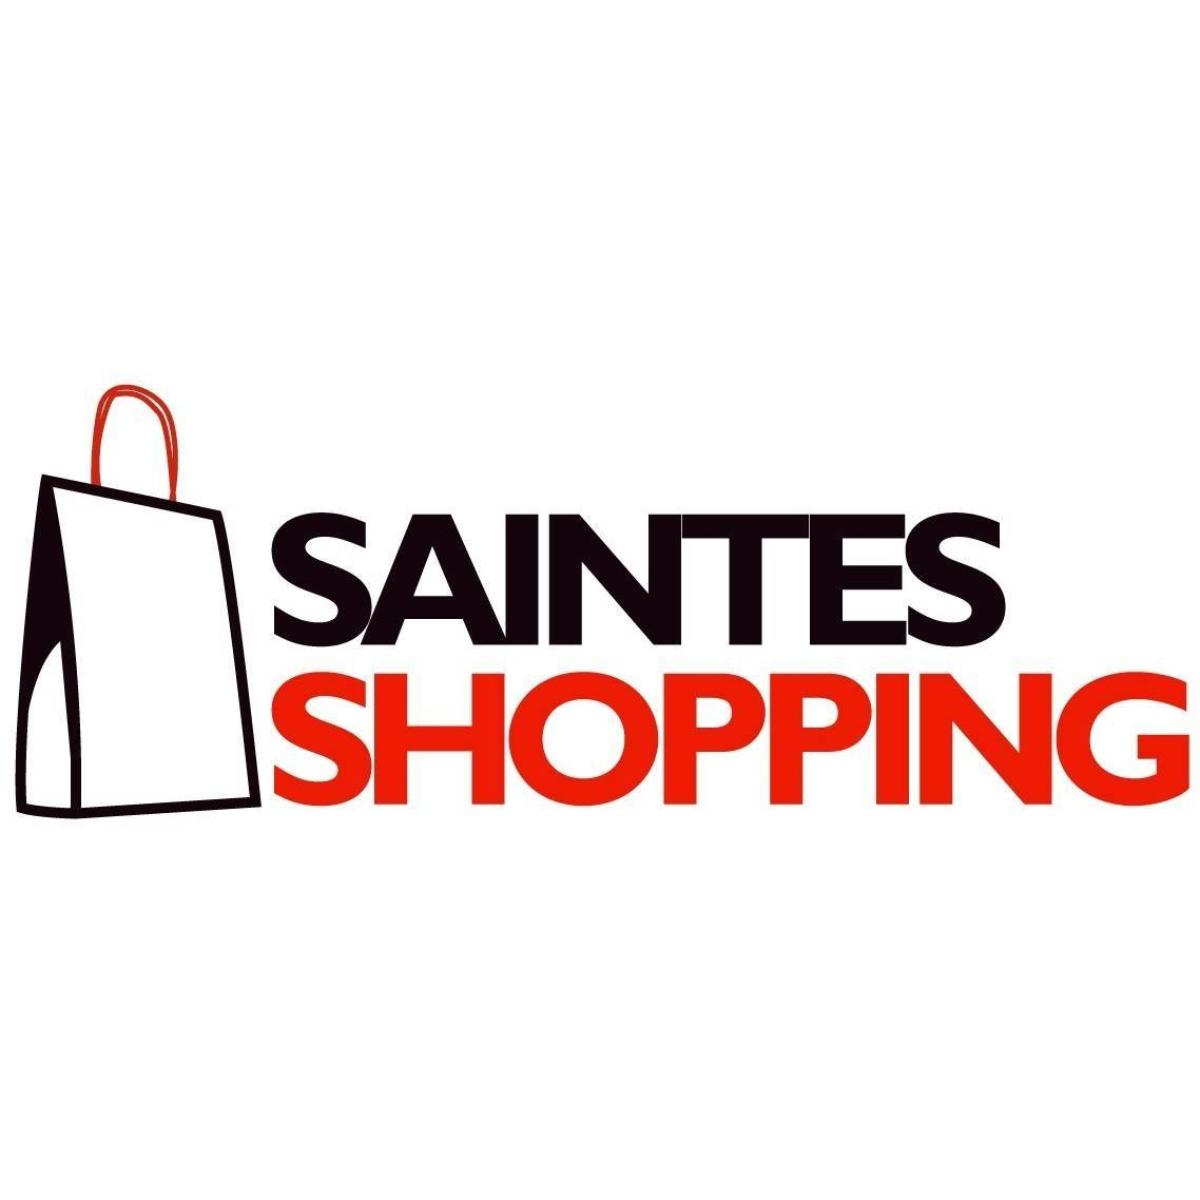 Saintes Shopping